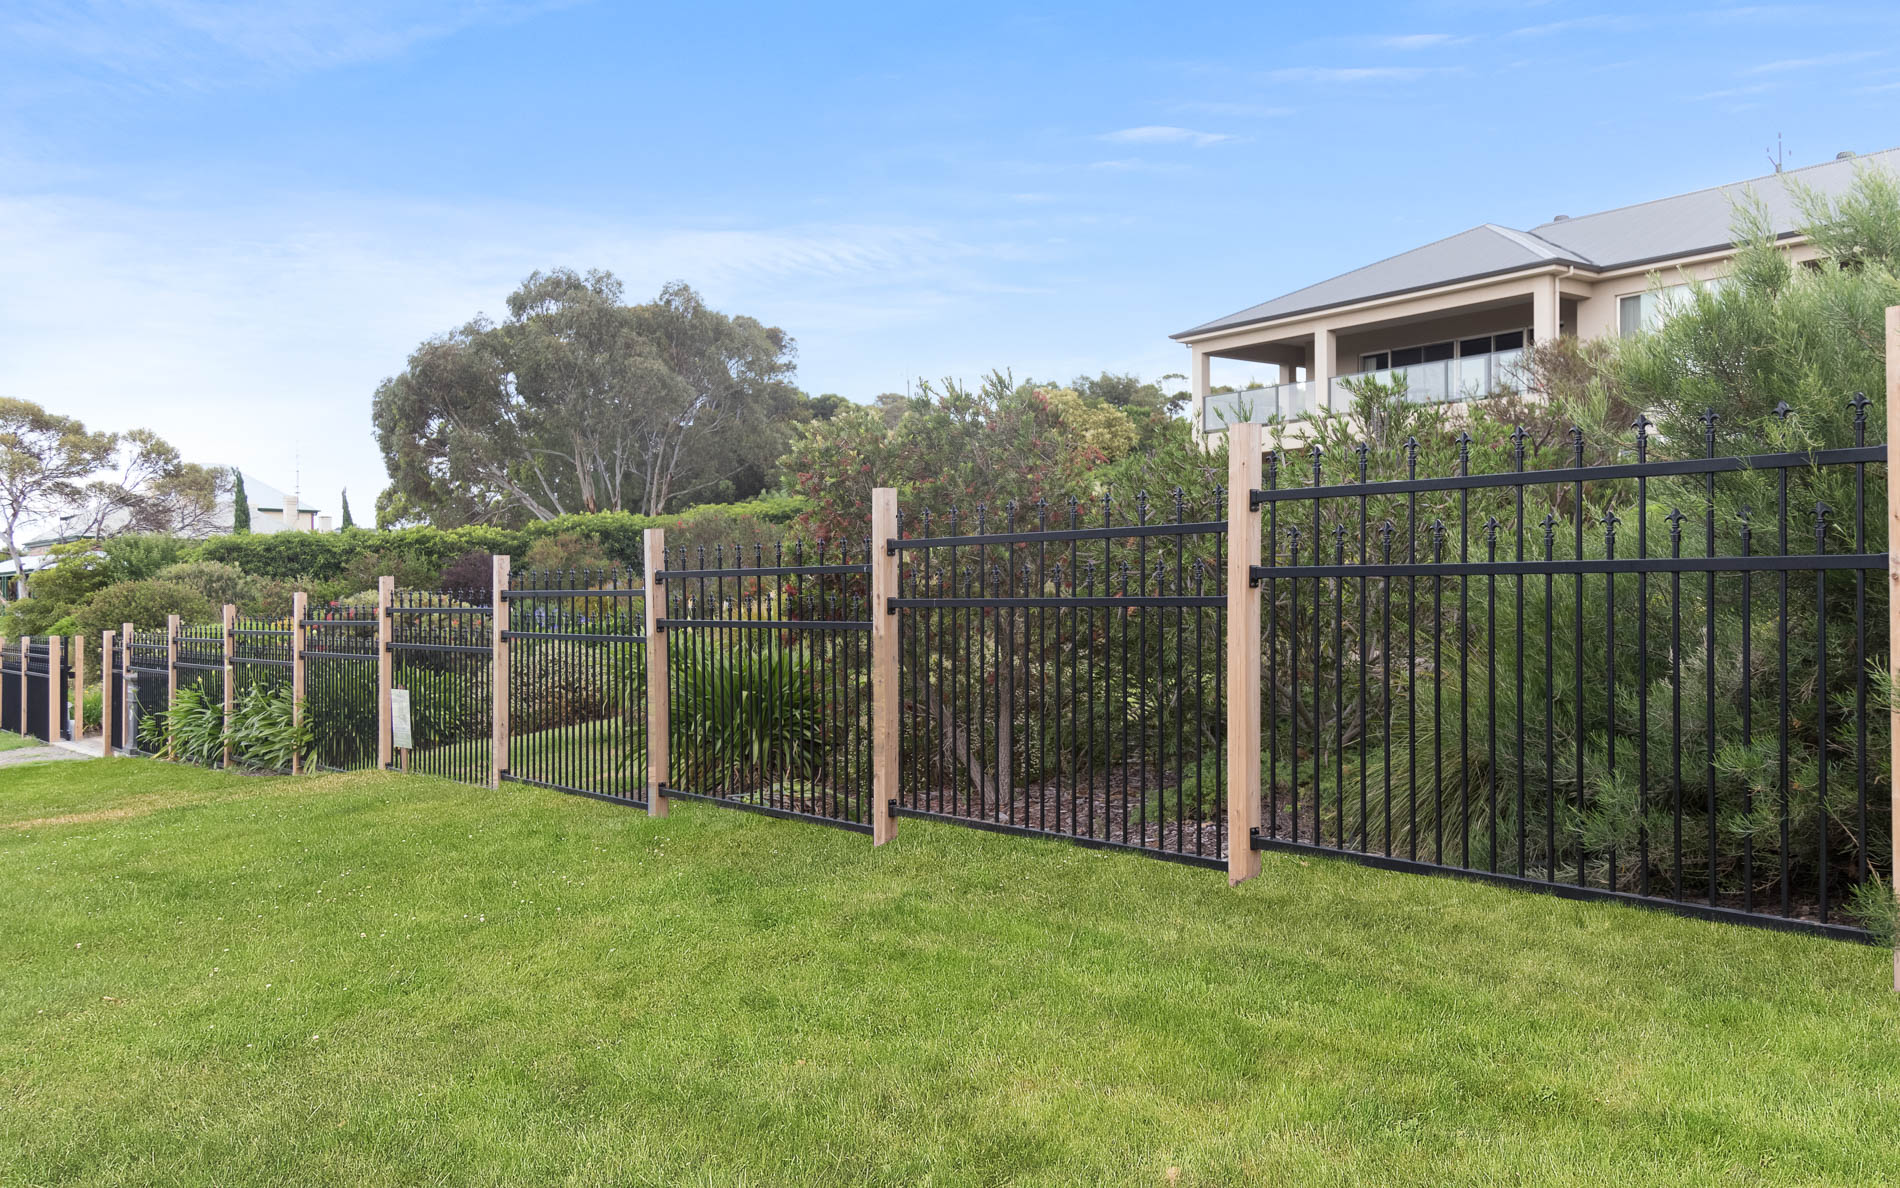 Fencing Contractors, Fencing, Fences, Landscaping, Landscapers, Spear Fencing, Motorised Gates, Fleurieu